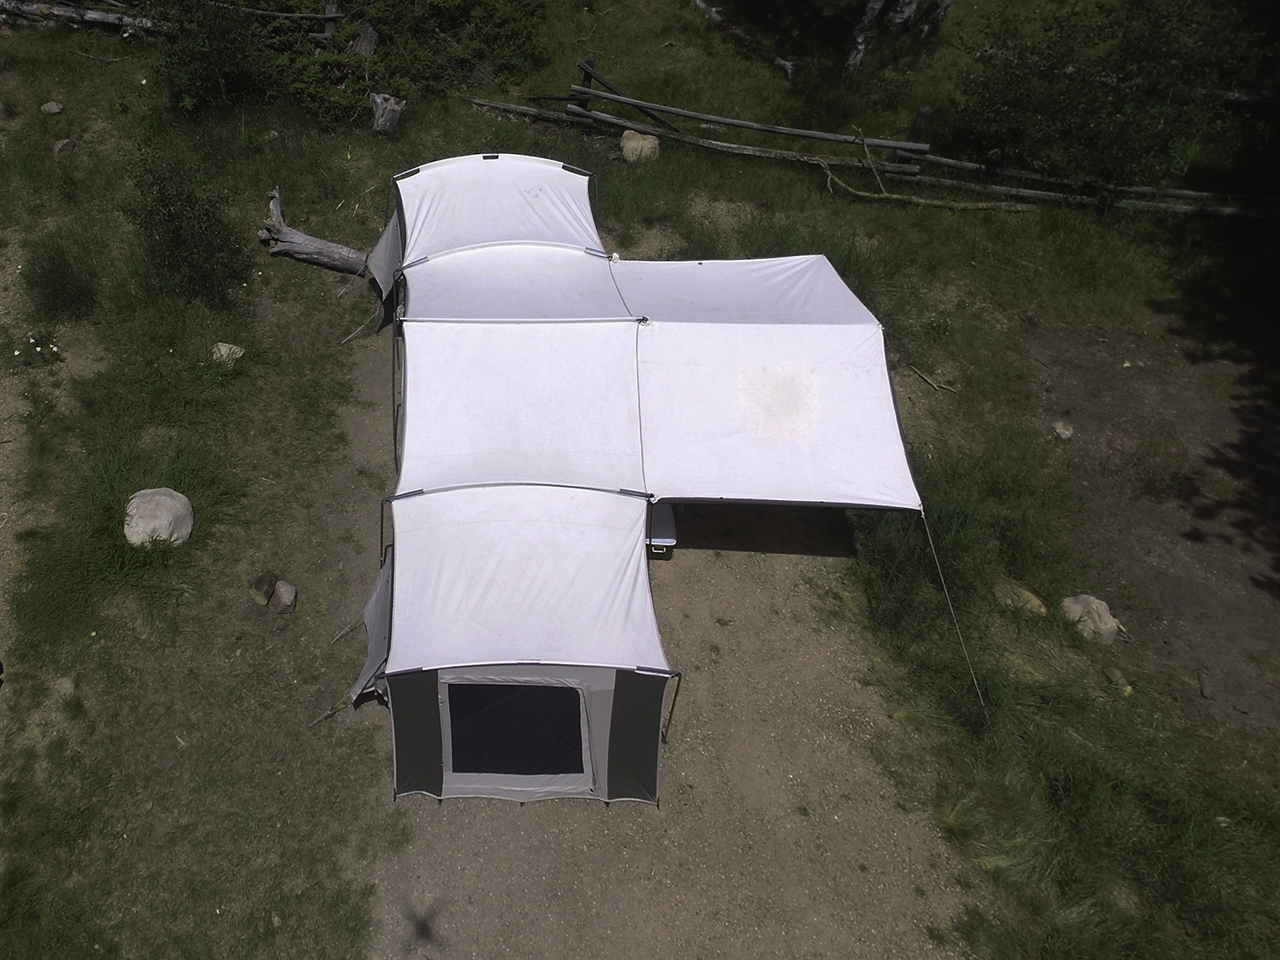 6160 Kodiak Canvas Grand Cabin 26x8 12 Person Tent